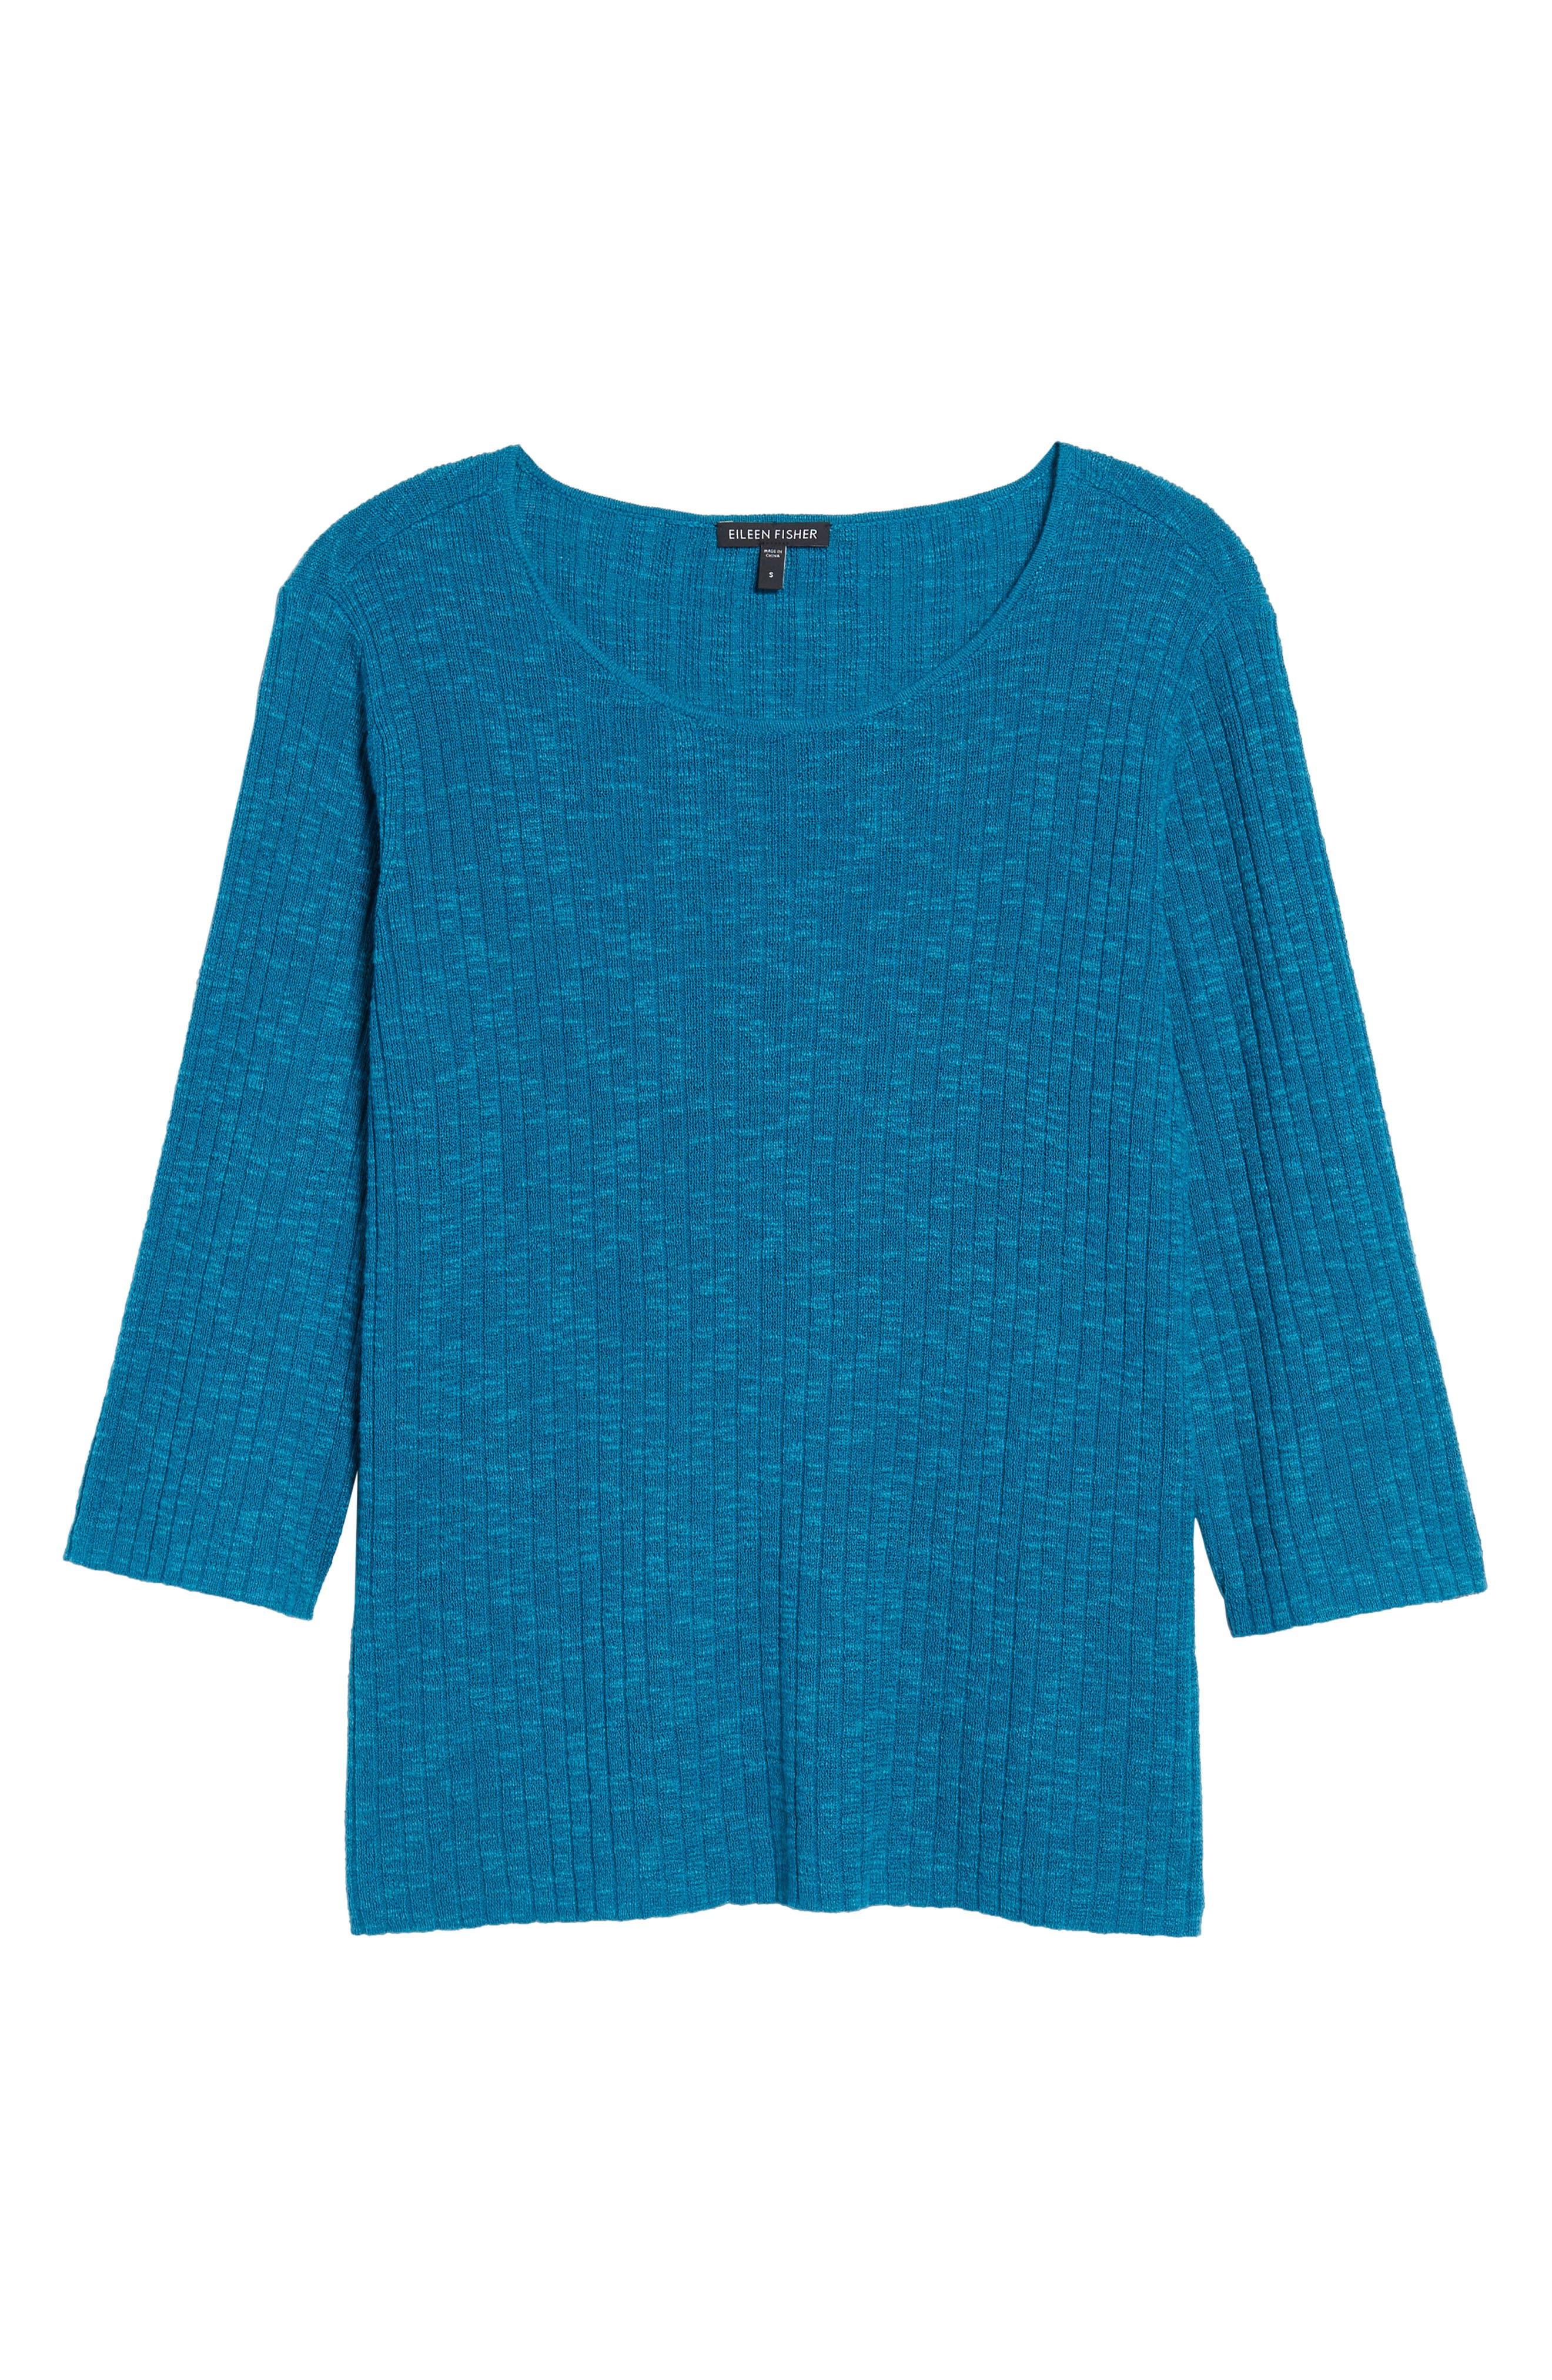 Ribbed Organic Linen & Cotton Sweater,                             Alternate thumbnail 12, color,